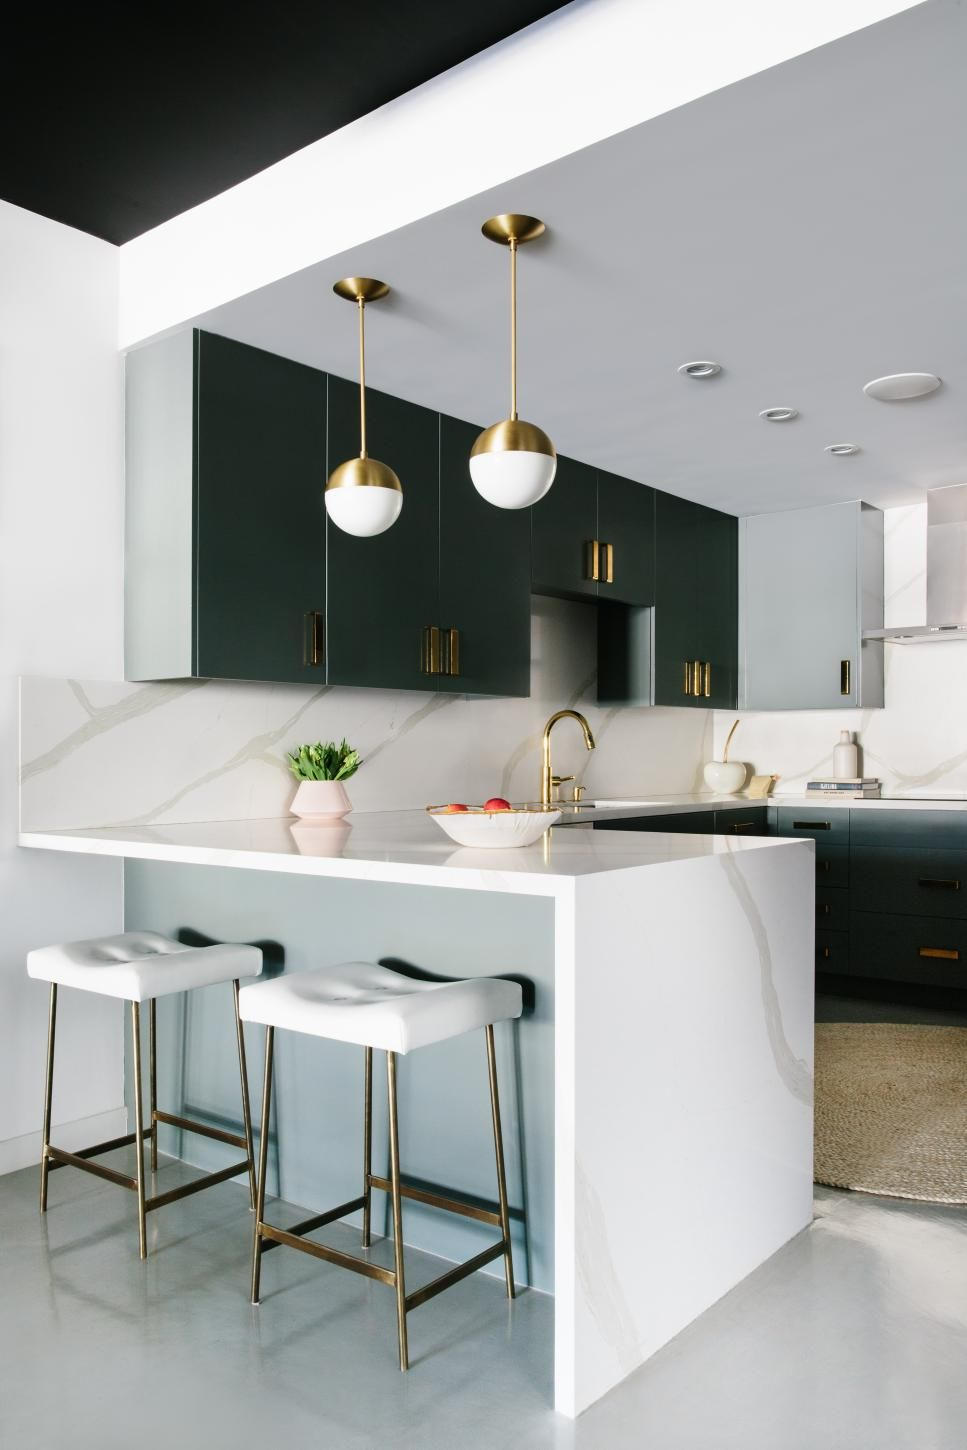 Best Iridescent Finishes Pastel Shades And Saturated Pops Of 400 x 300